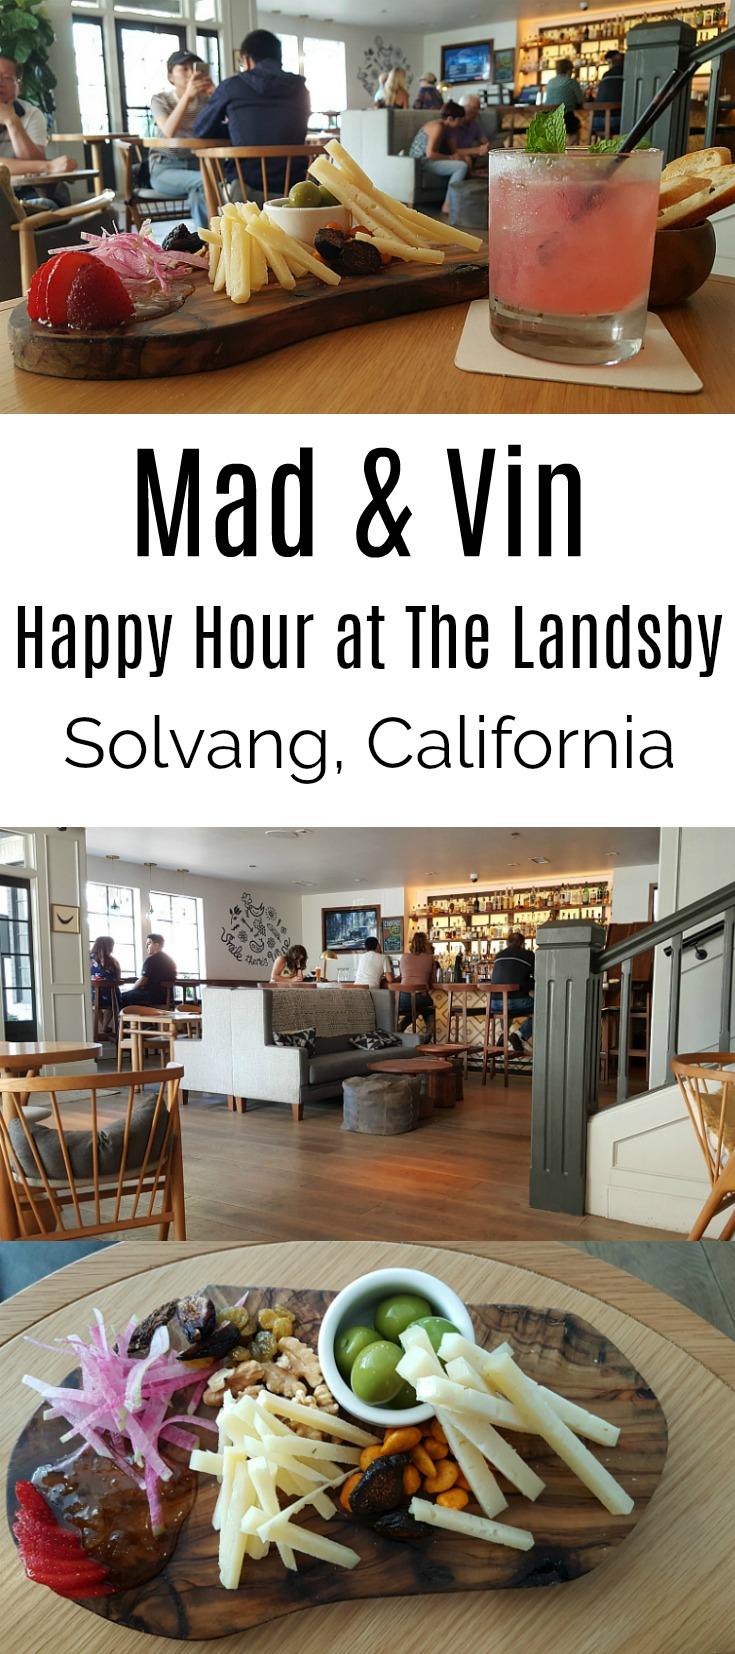 Happy Hour at The Landsby's Mad and Vin in Solvang